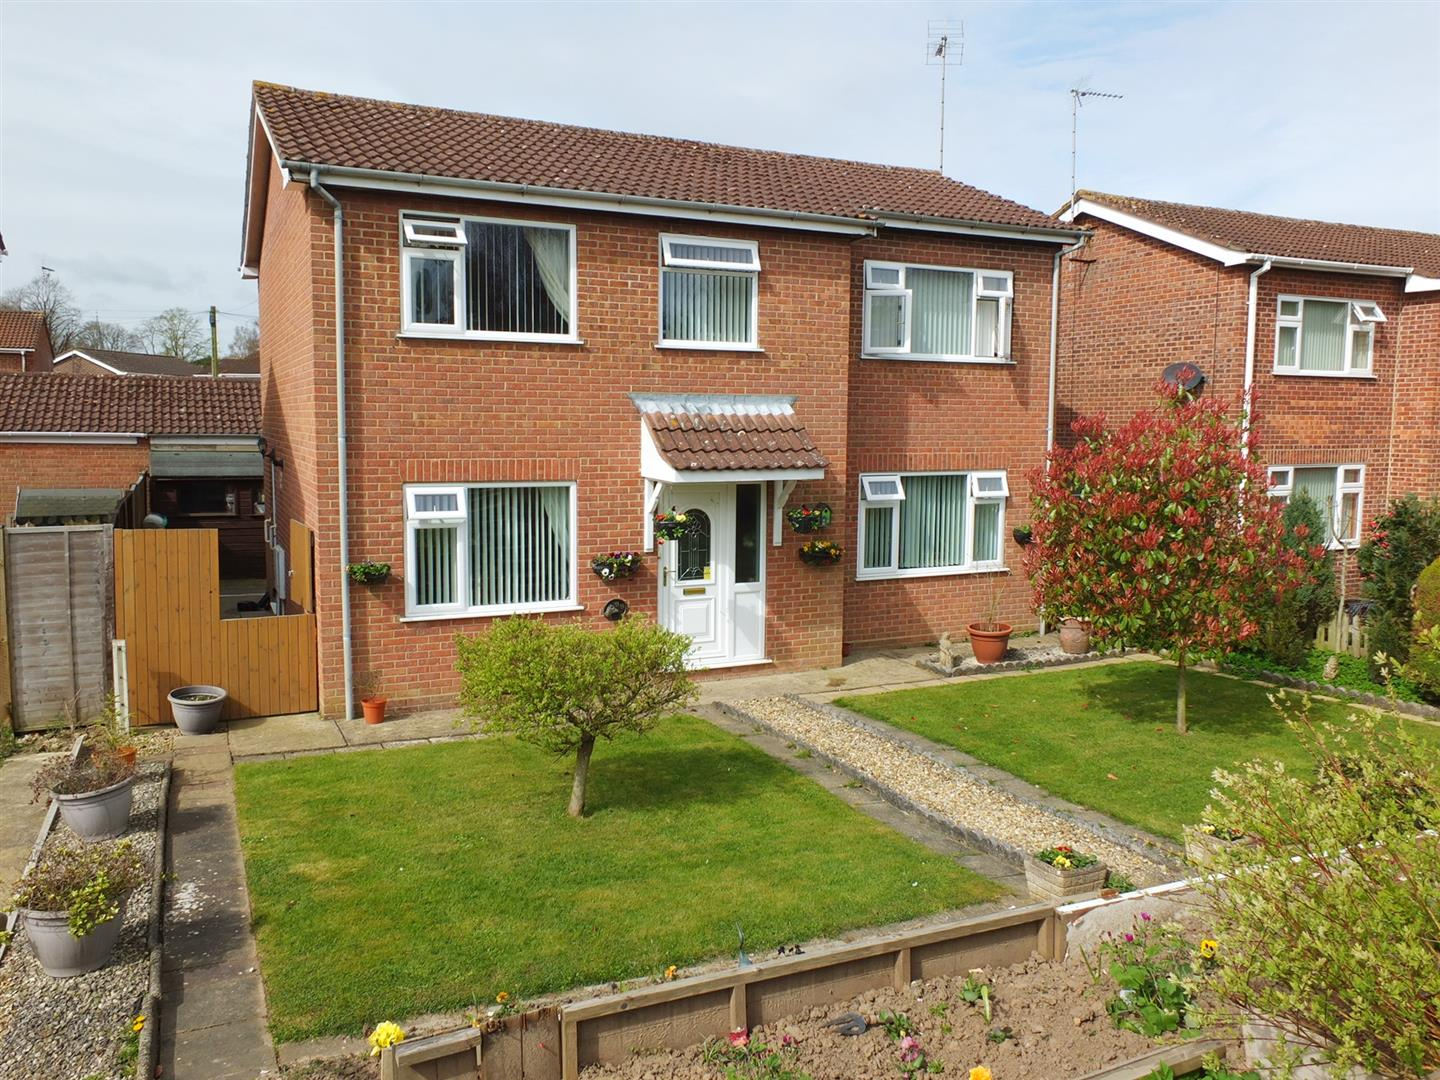 4 bed detached house for sale in Woodlands, Long Sutton Spalding  - Property Image 1